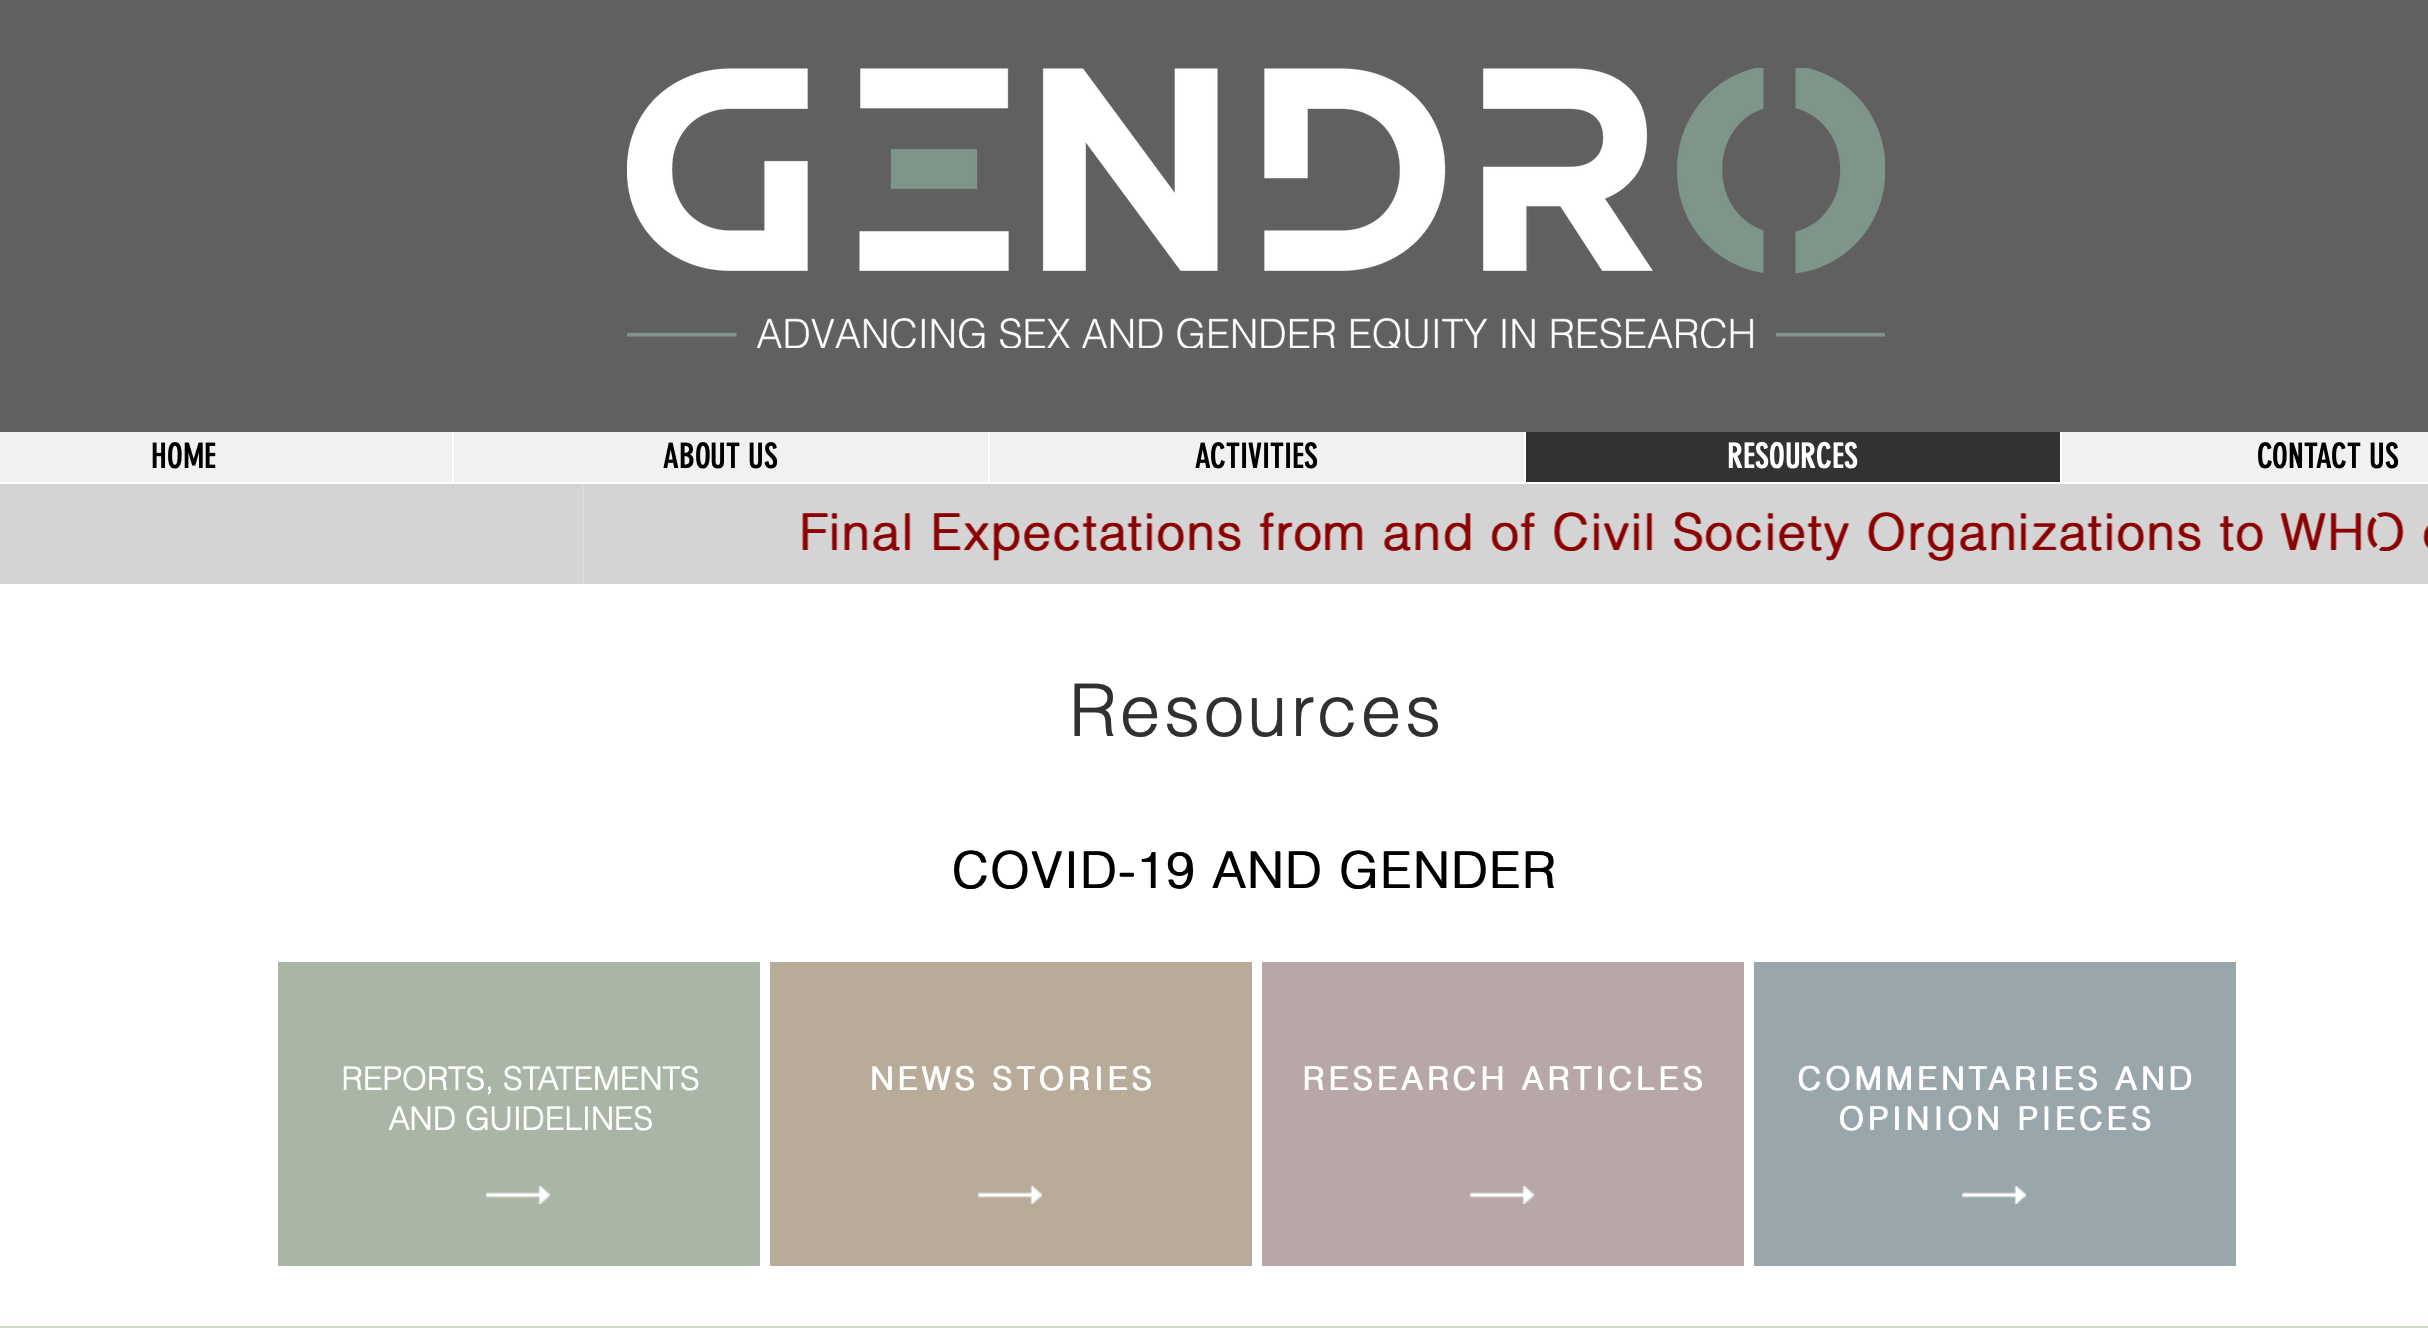 Resources - COVID-19 and Gender